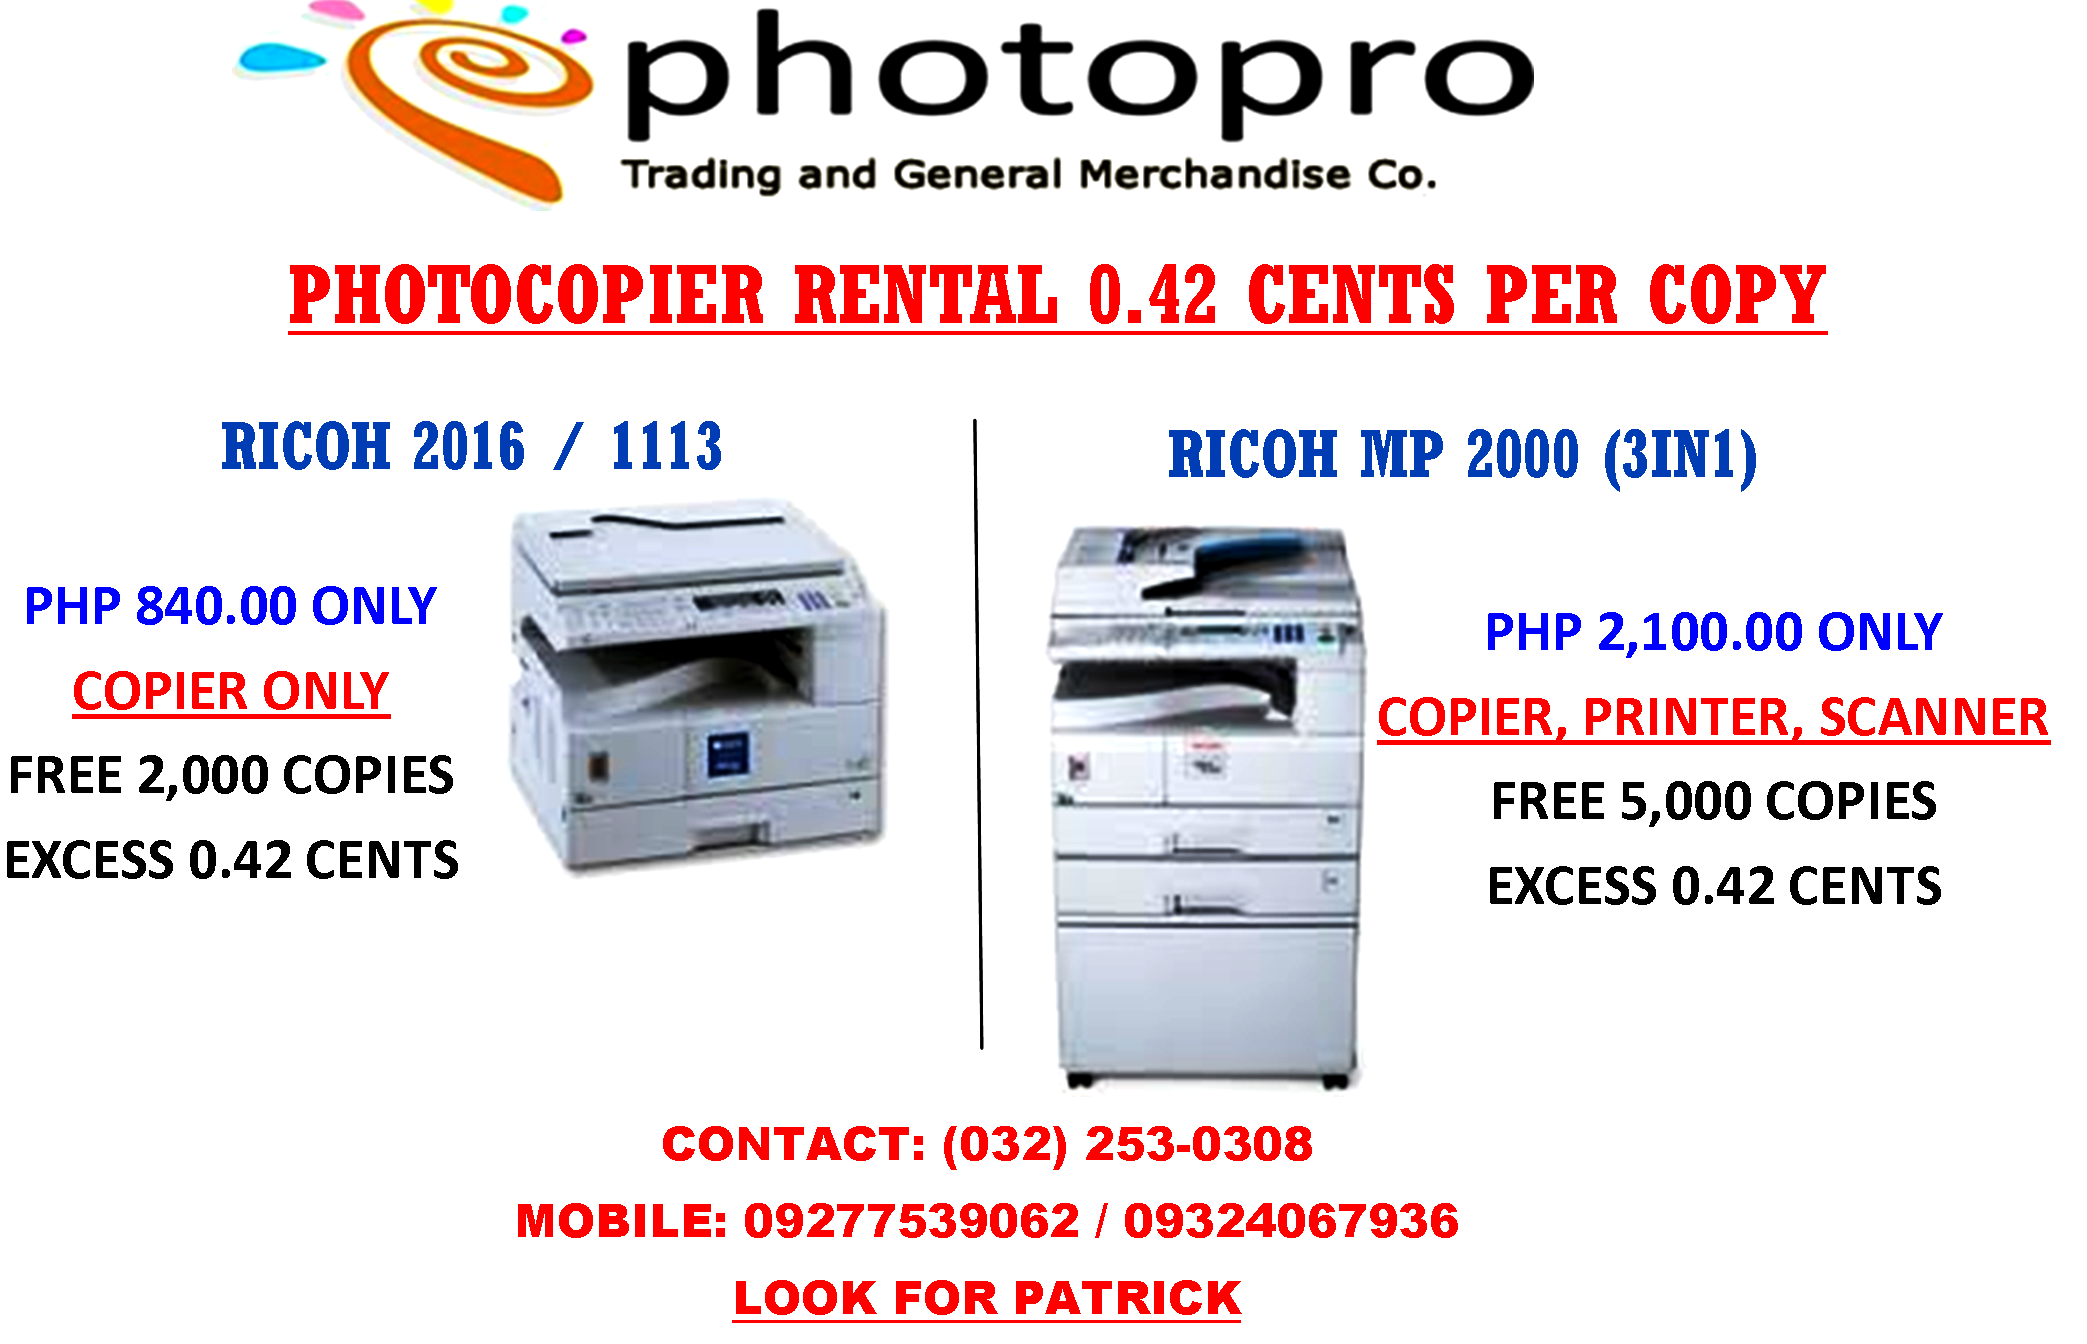 Xerox Machine For Rent in Cebu Areas - Others Cebu City Philippines - 30483